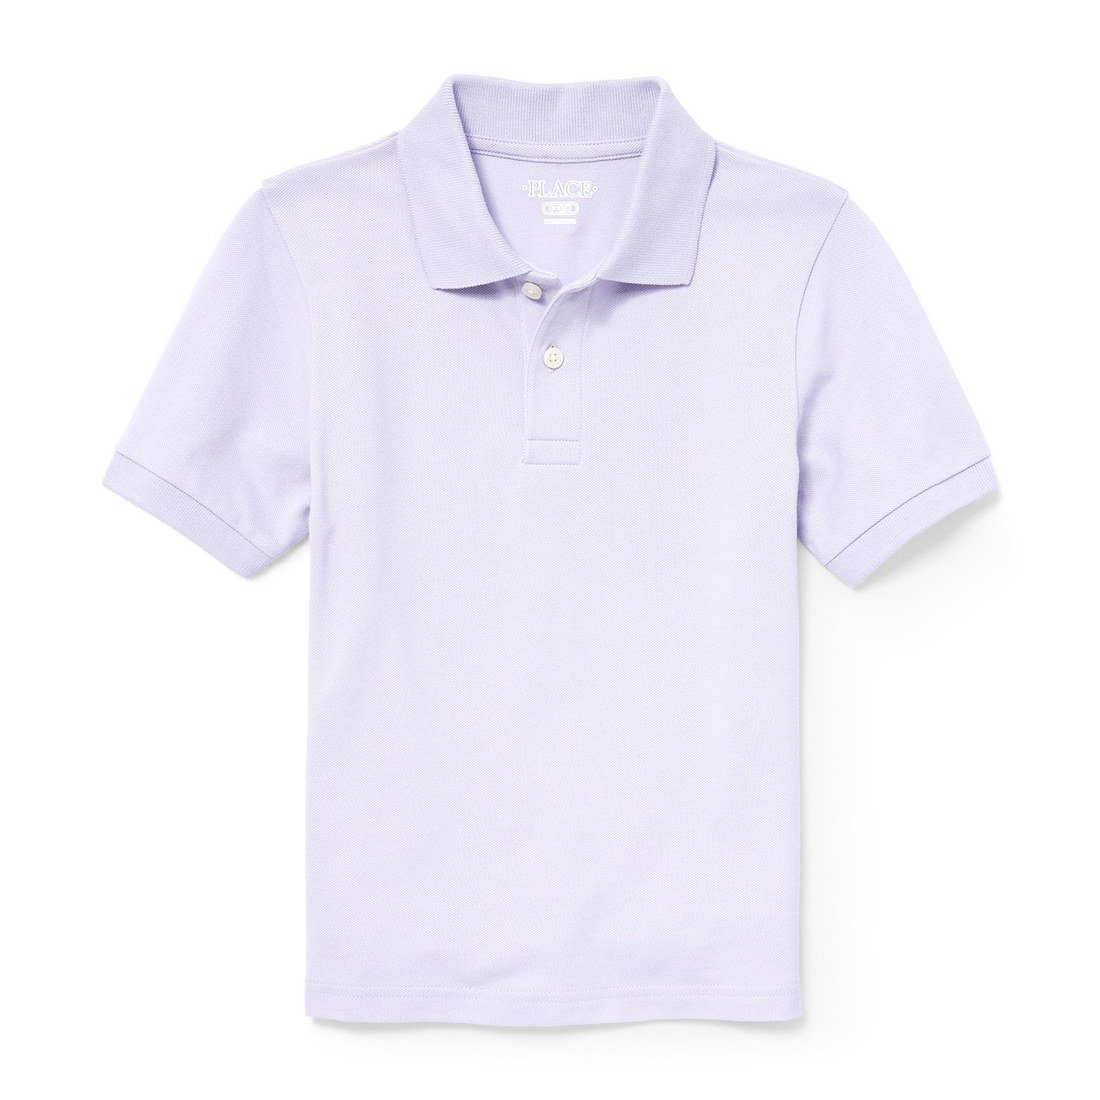 The Children's Place Boys' Big Short Sleeve Uniform Polo, Loveable 2428, S (5/6)